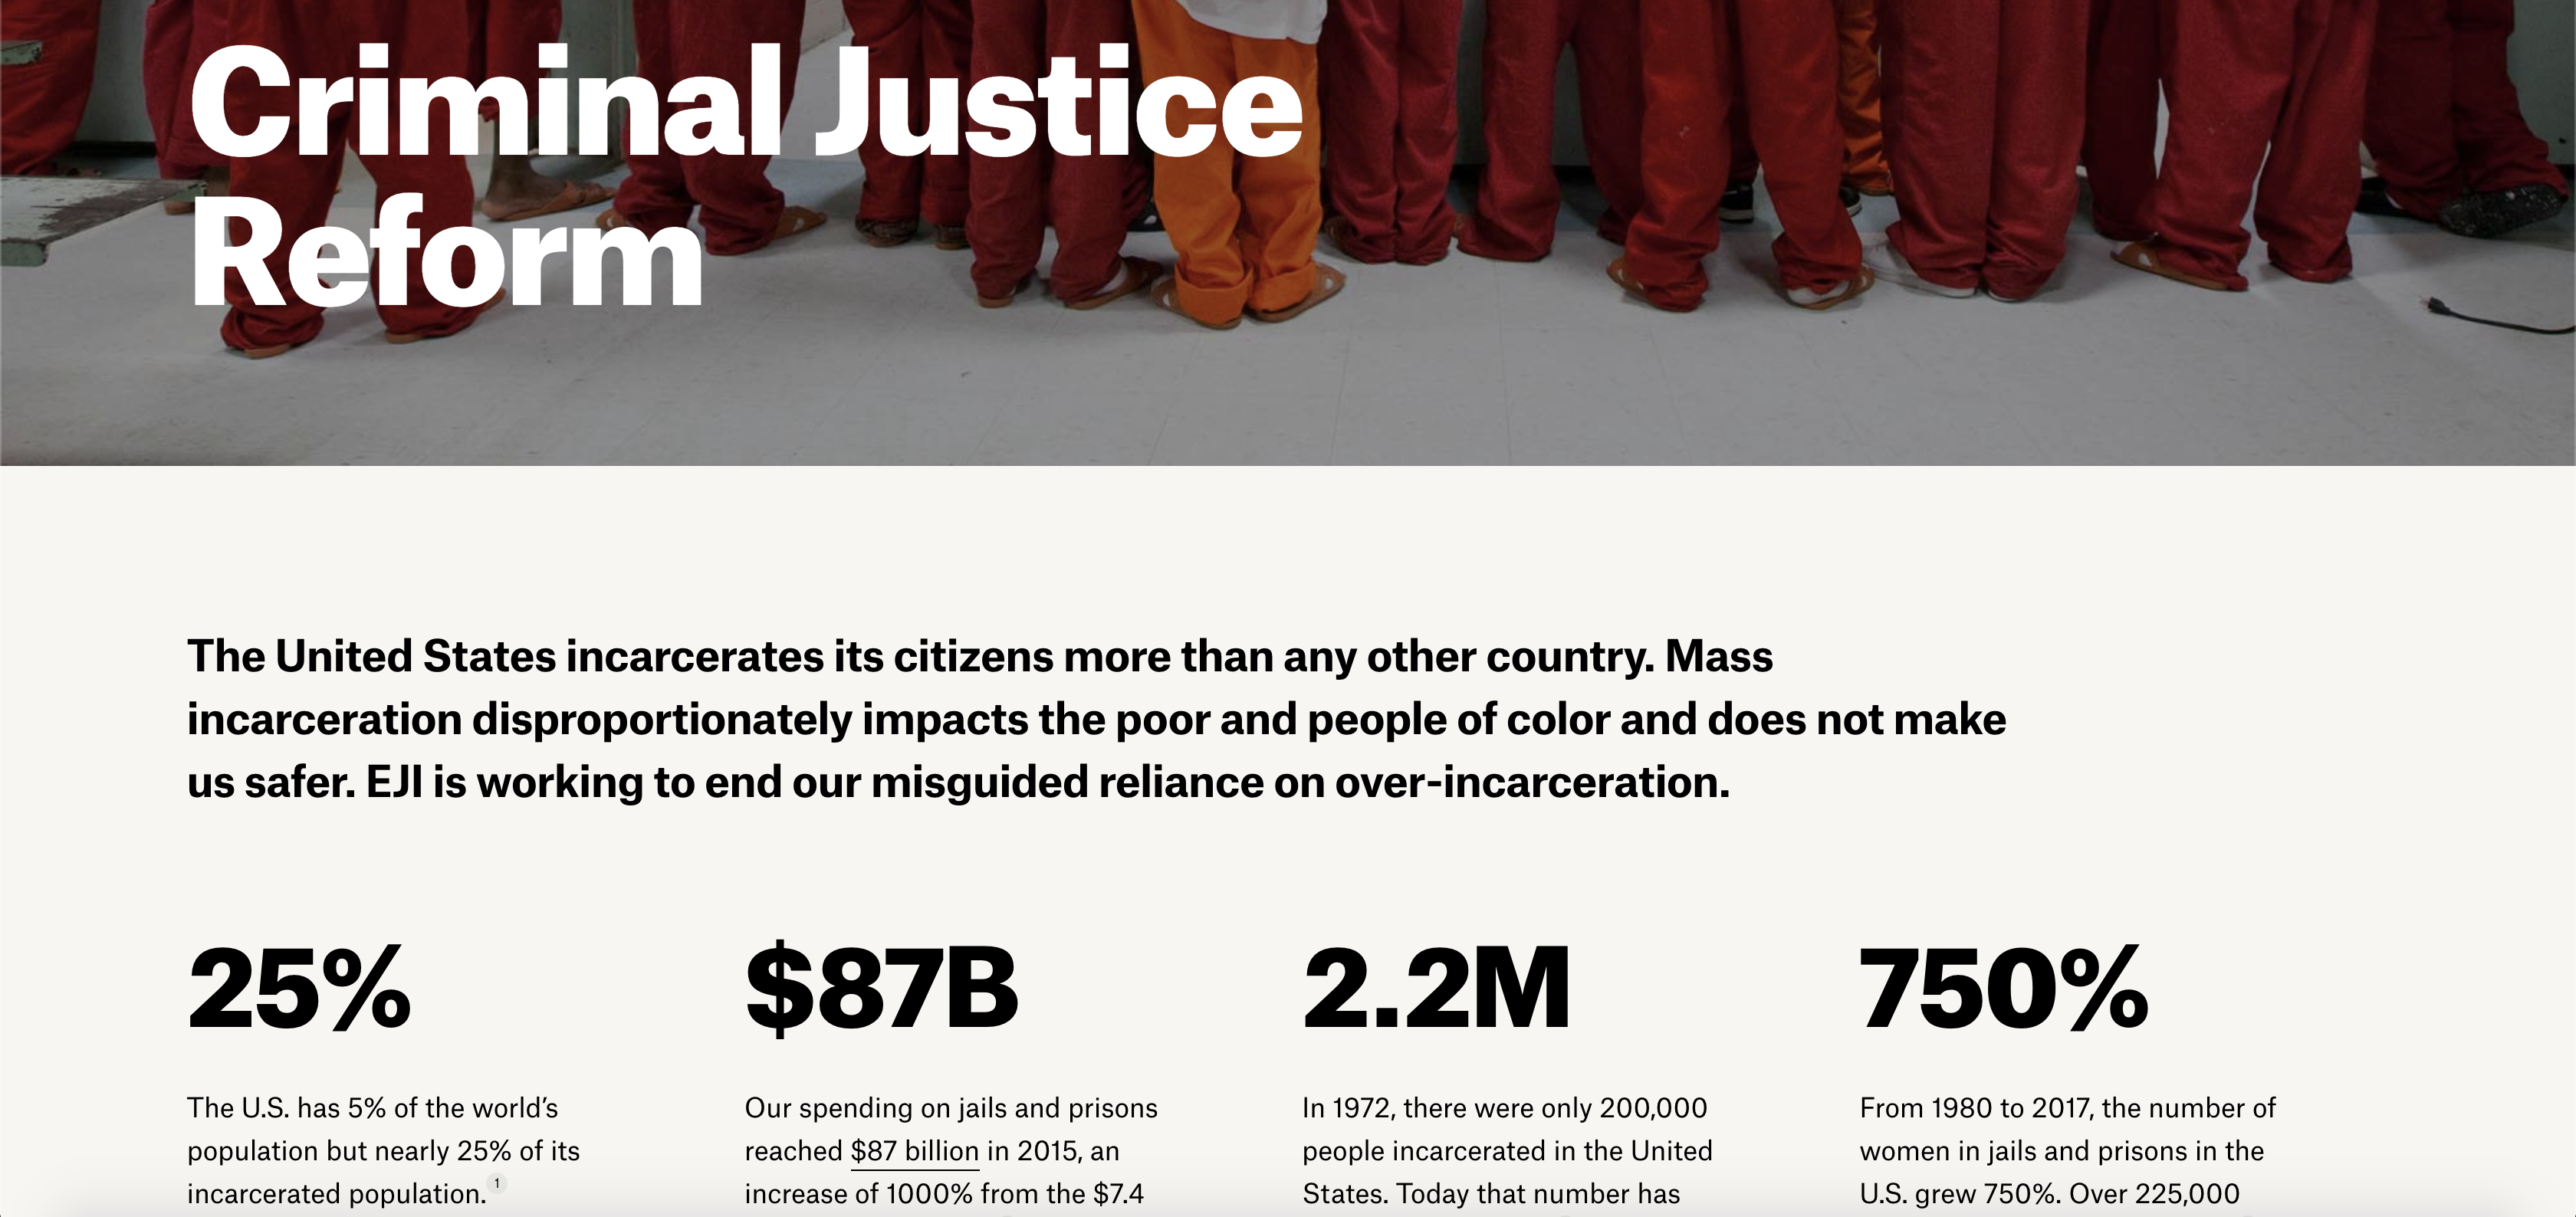 The opening paragraph on the Criminal Justice Reform page on the EJI website